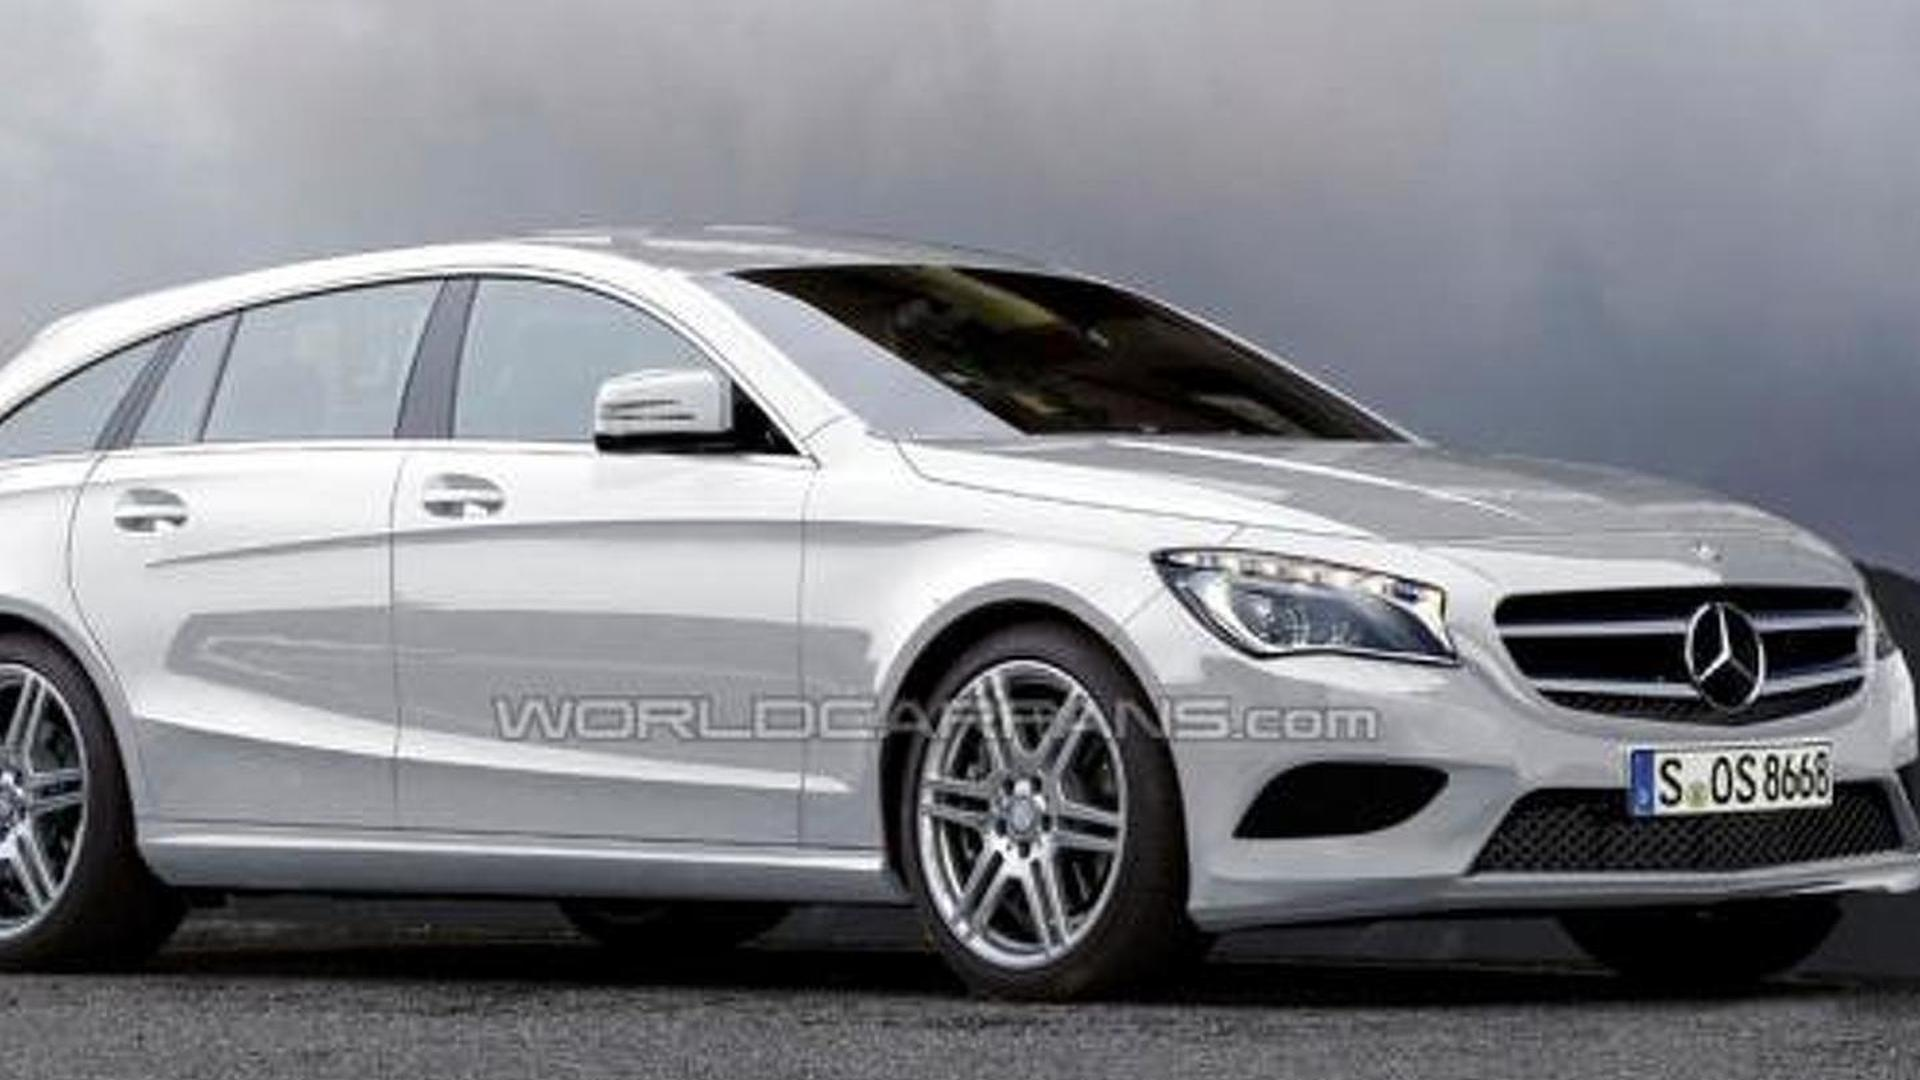 Mercedes CLA Shooting Brake in the works